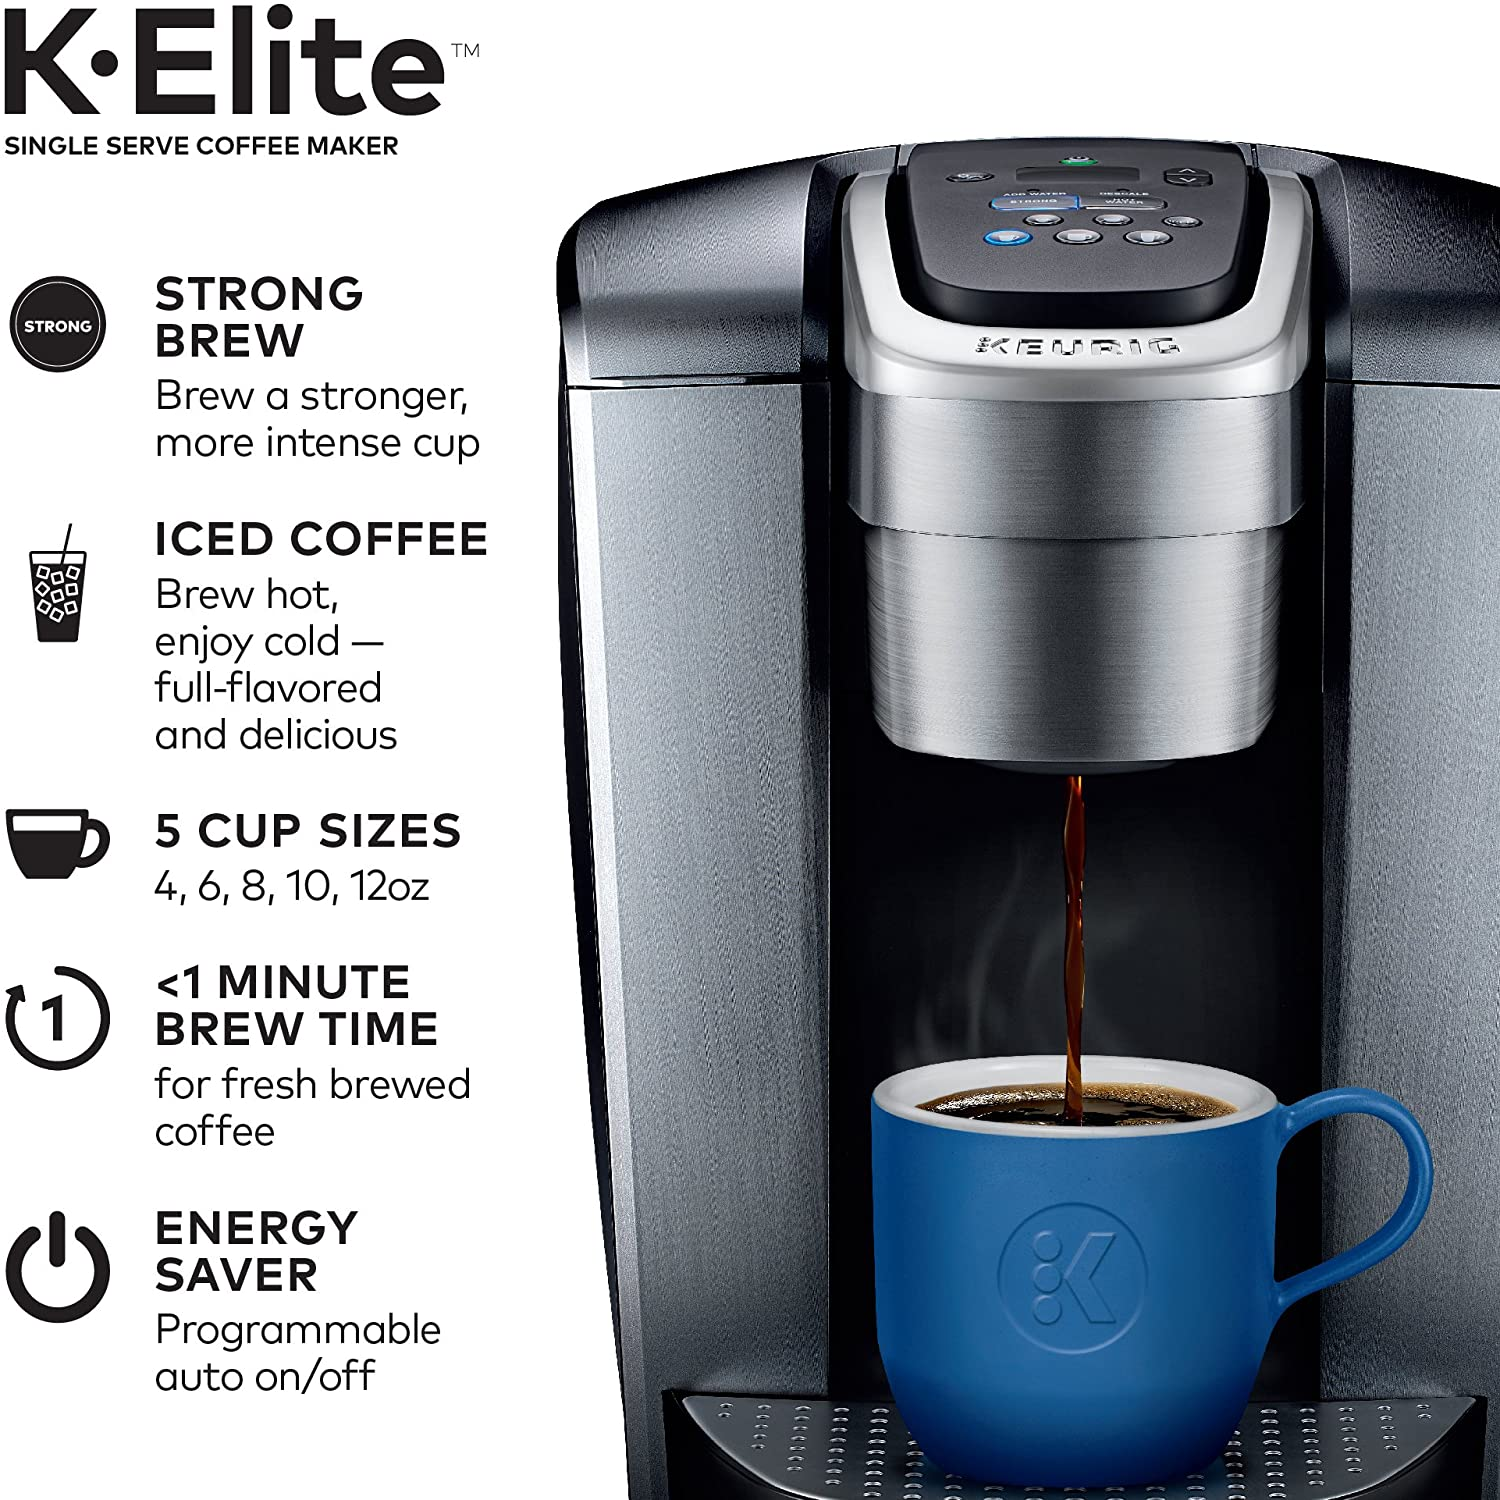 Amazon.com: Keurig K-Elite Coffee Maker, Single Serve K-Cup Pod Coffee Brewer, With Iced Coffee Capability, Brushed Silver: Kitchen & Dining